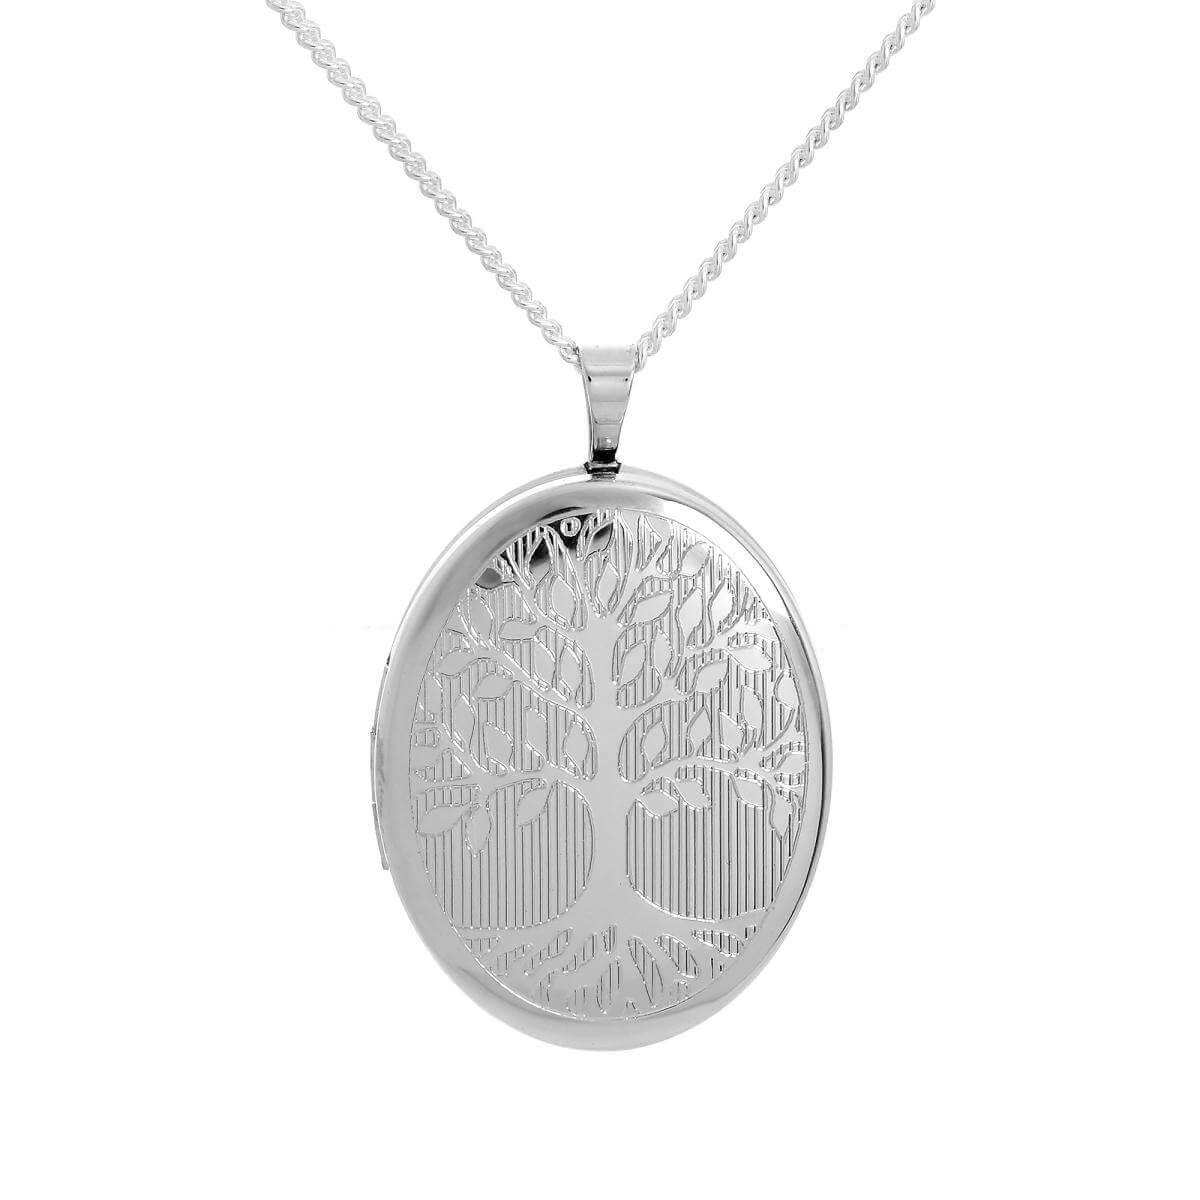 lockets hammy new sterling products oval silver free shipping curlicue woot of life arrivals locket in tree collections necklace